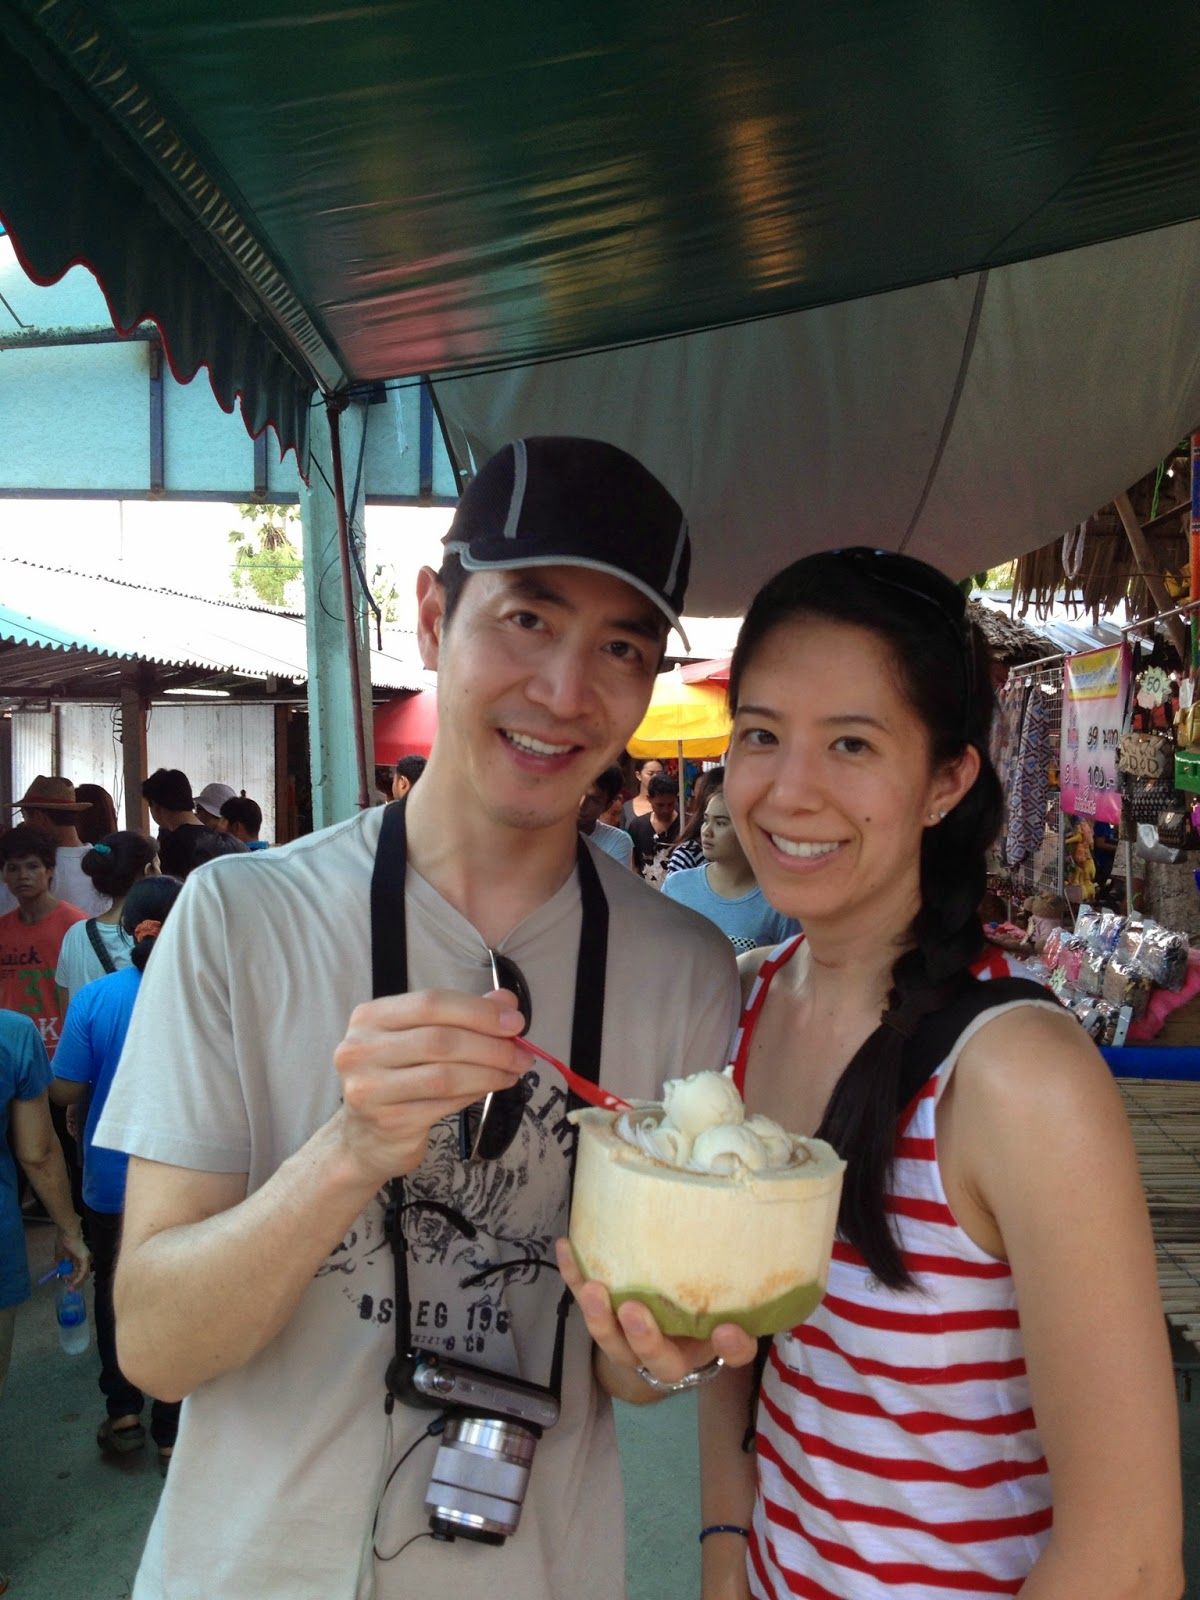 Ayutthaya - Ayothaya Floating Market - Can't wait to dig into that coconut ice cream